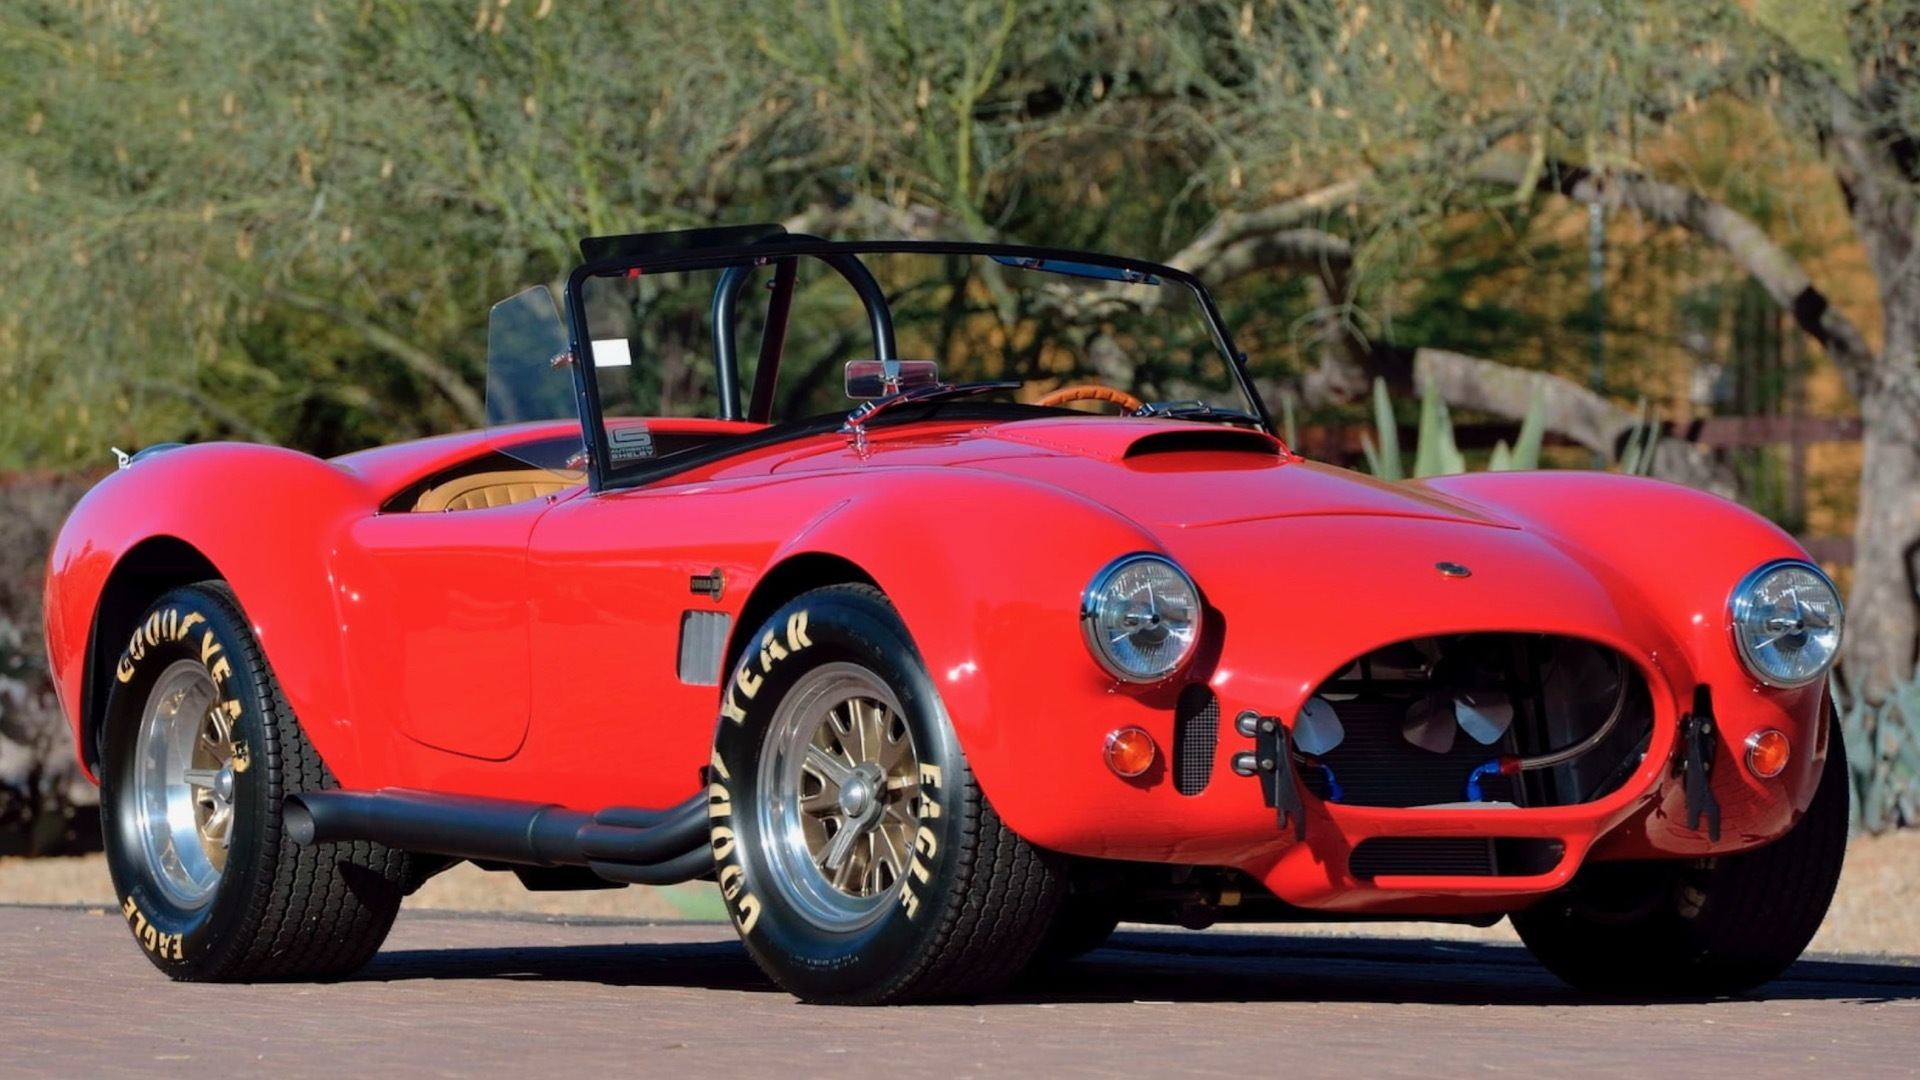 Shelby Cobra 427 FAM owned by Paul Walker (Photo by Mecum Auctions)